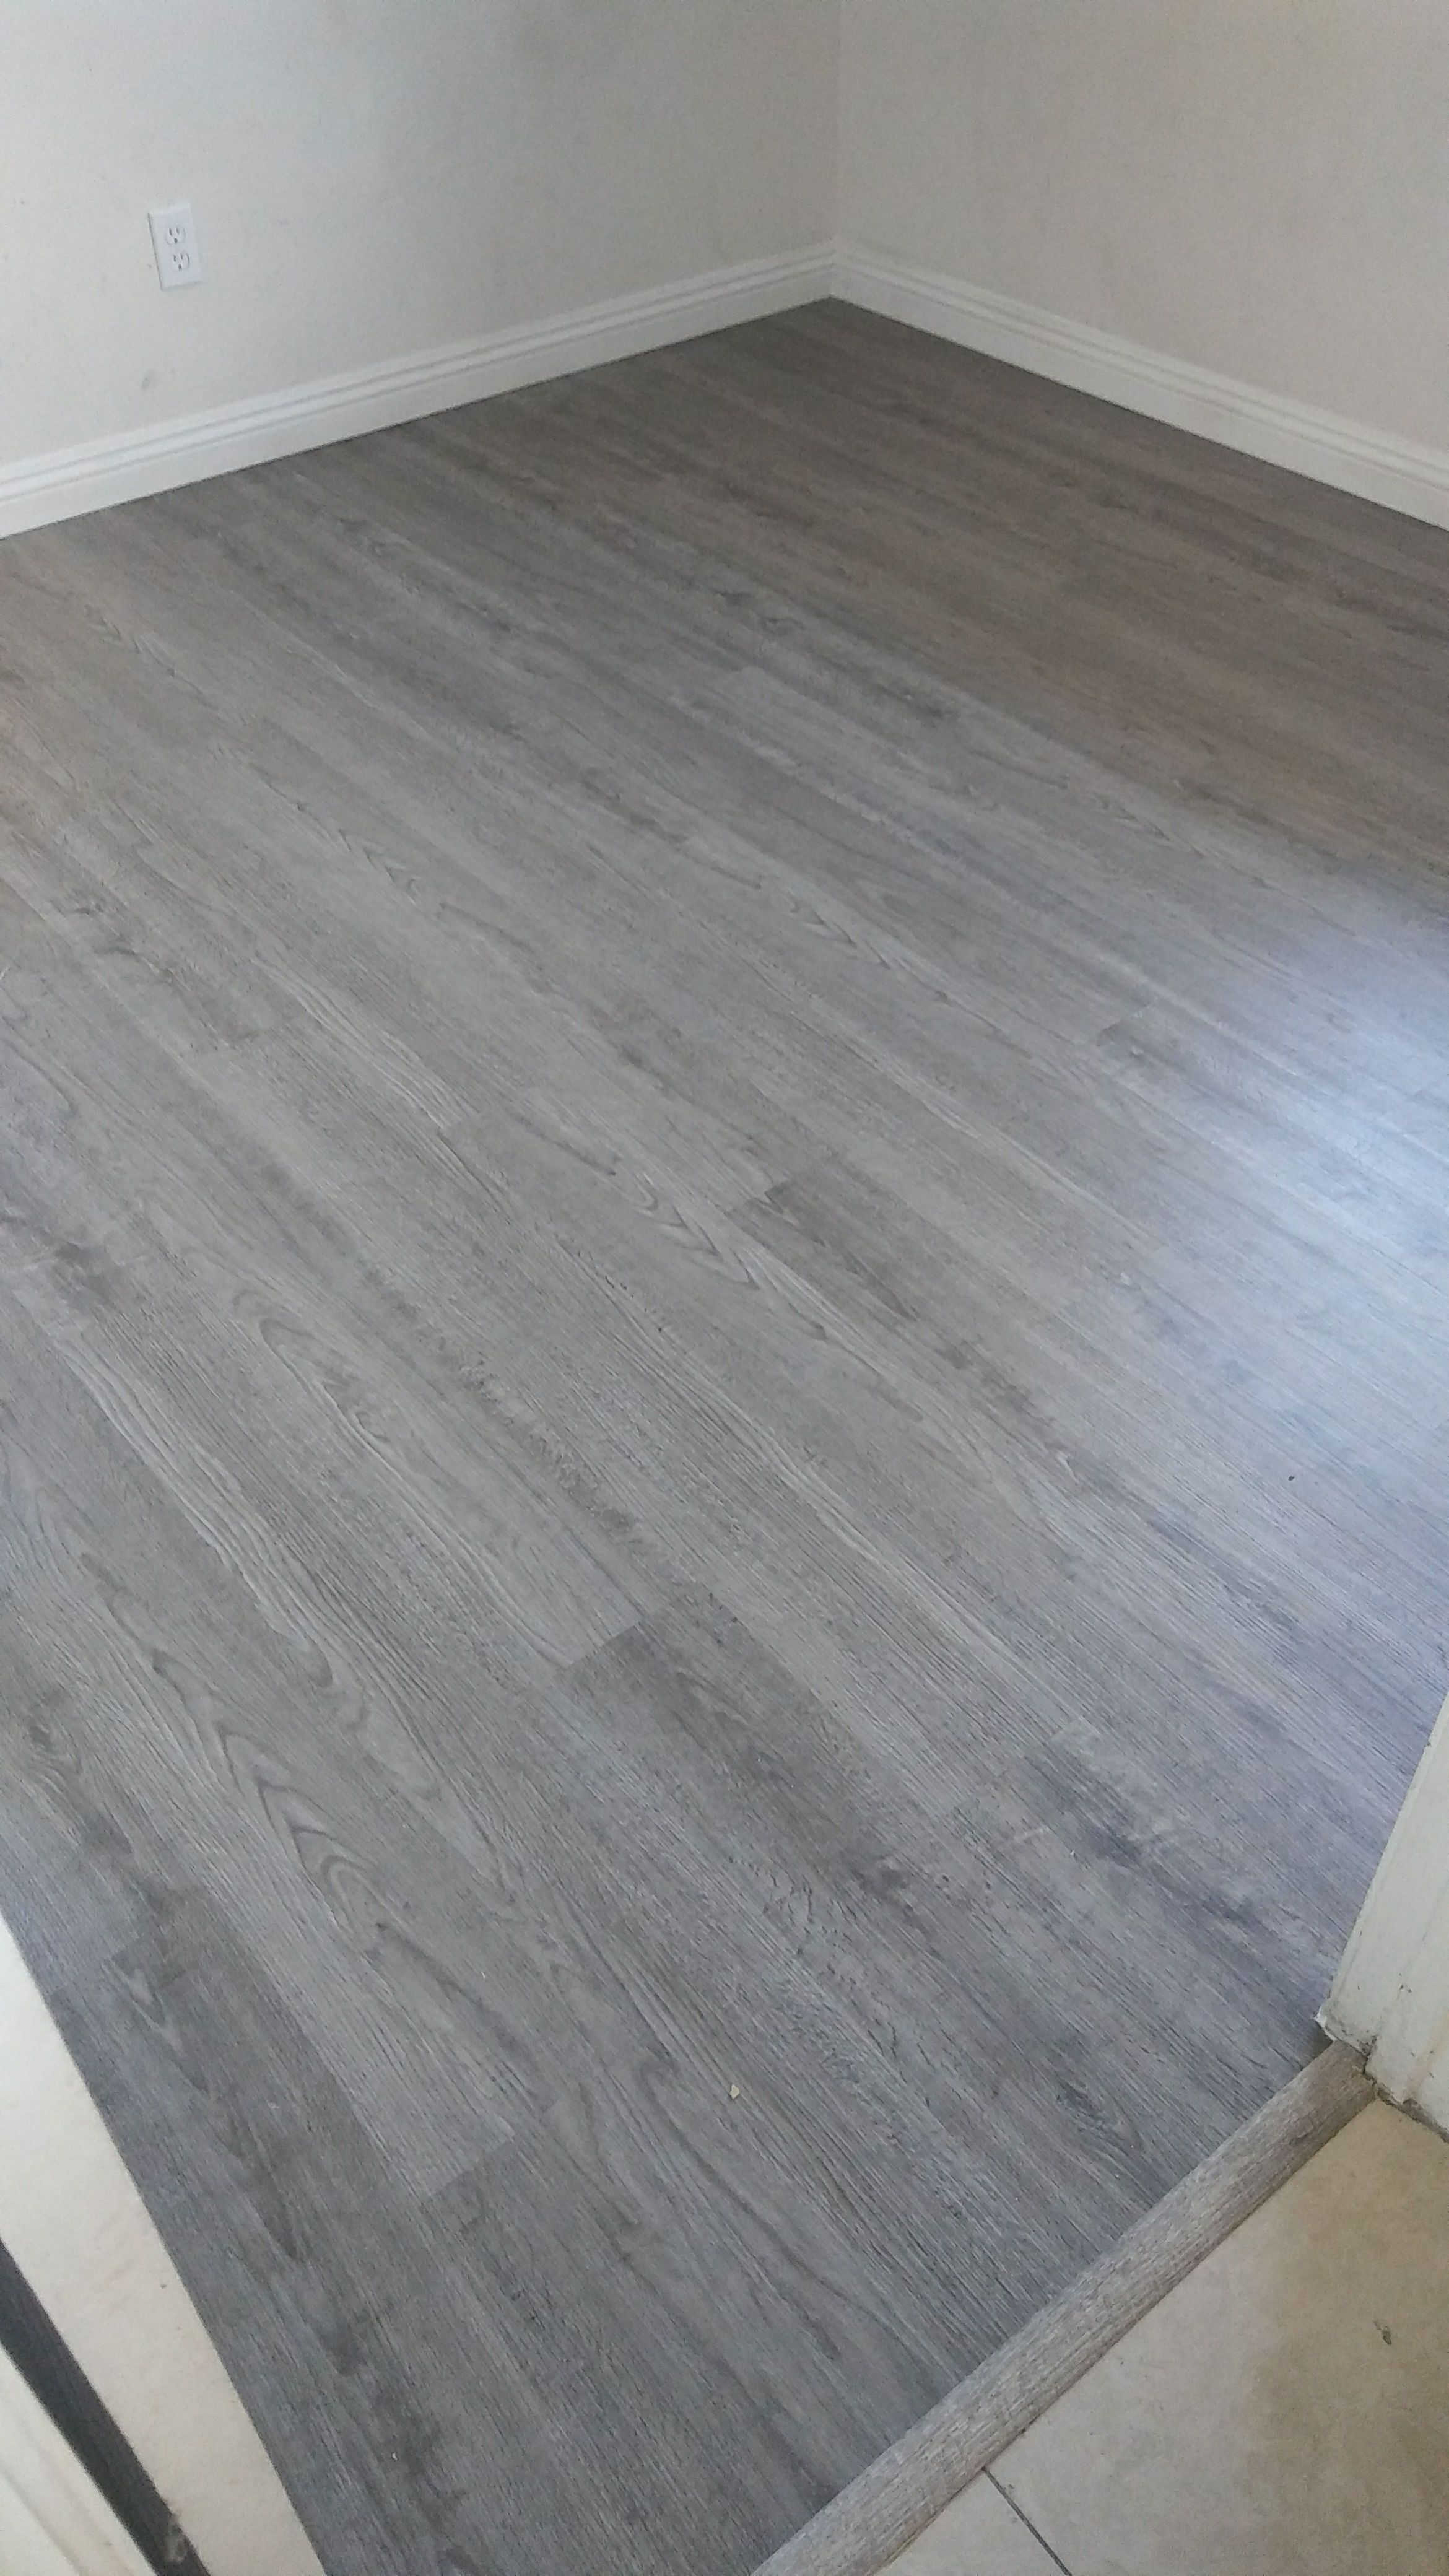 Before And After Photos Of A Plank Vinyl Installation In Midland Gray Color Flooring P Grey Vinyl Plank Flooring House Flooring Grey Wood Floors Living Room